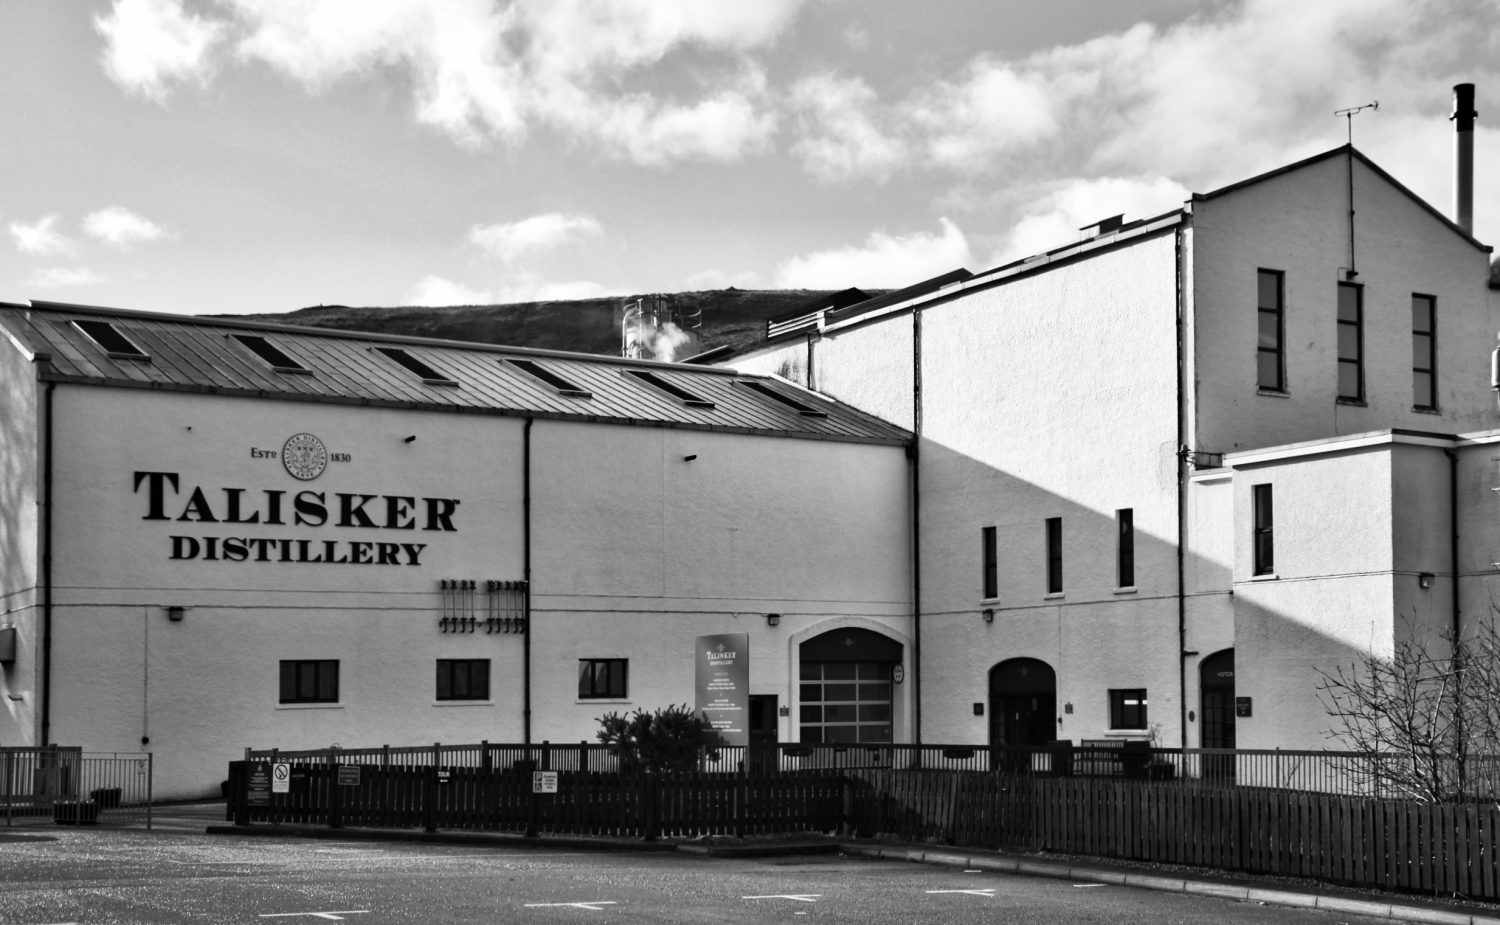 Talisker Distillery, Carbost, Isle of Skye